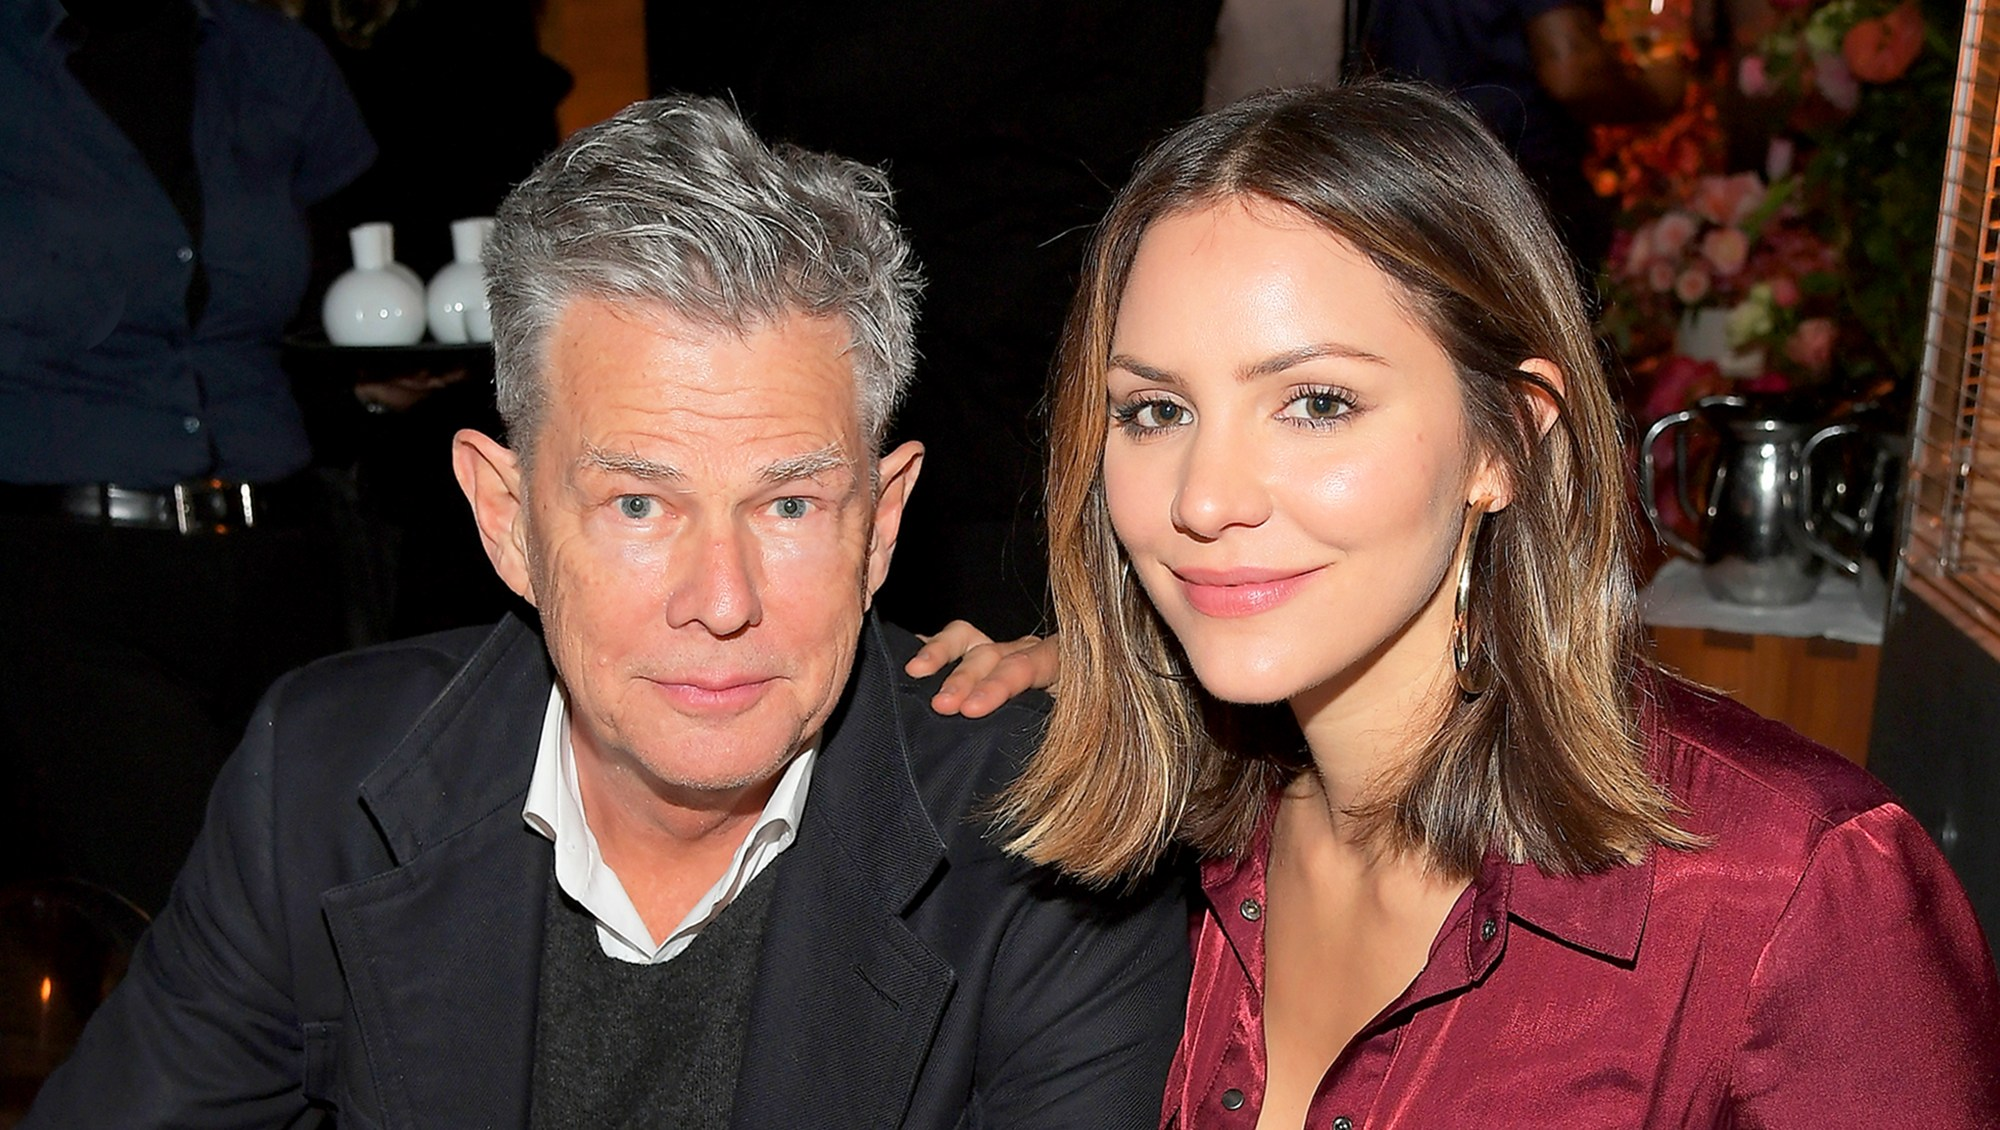 David Foster and Katharine McPhee attend Bumble Bizz Los Angeles Launch Dinner At Nobu Malibu at Nobu Malibu on November 15, 2017 in Malibu, California.